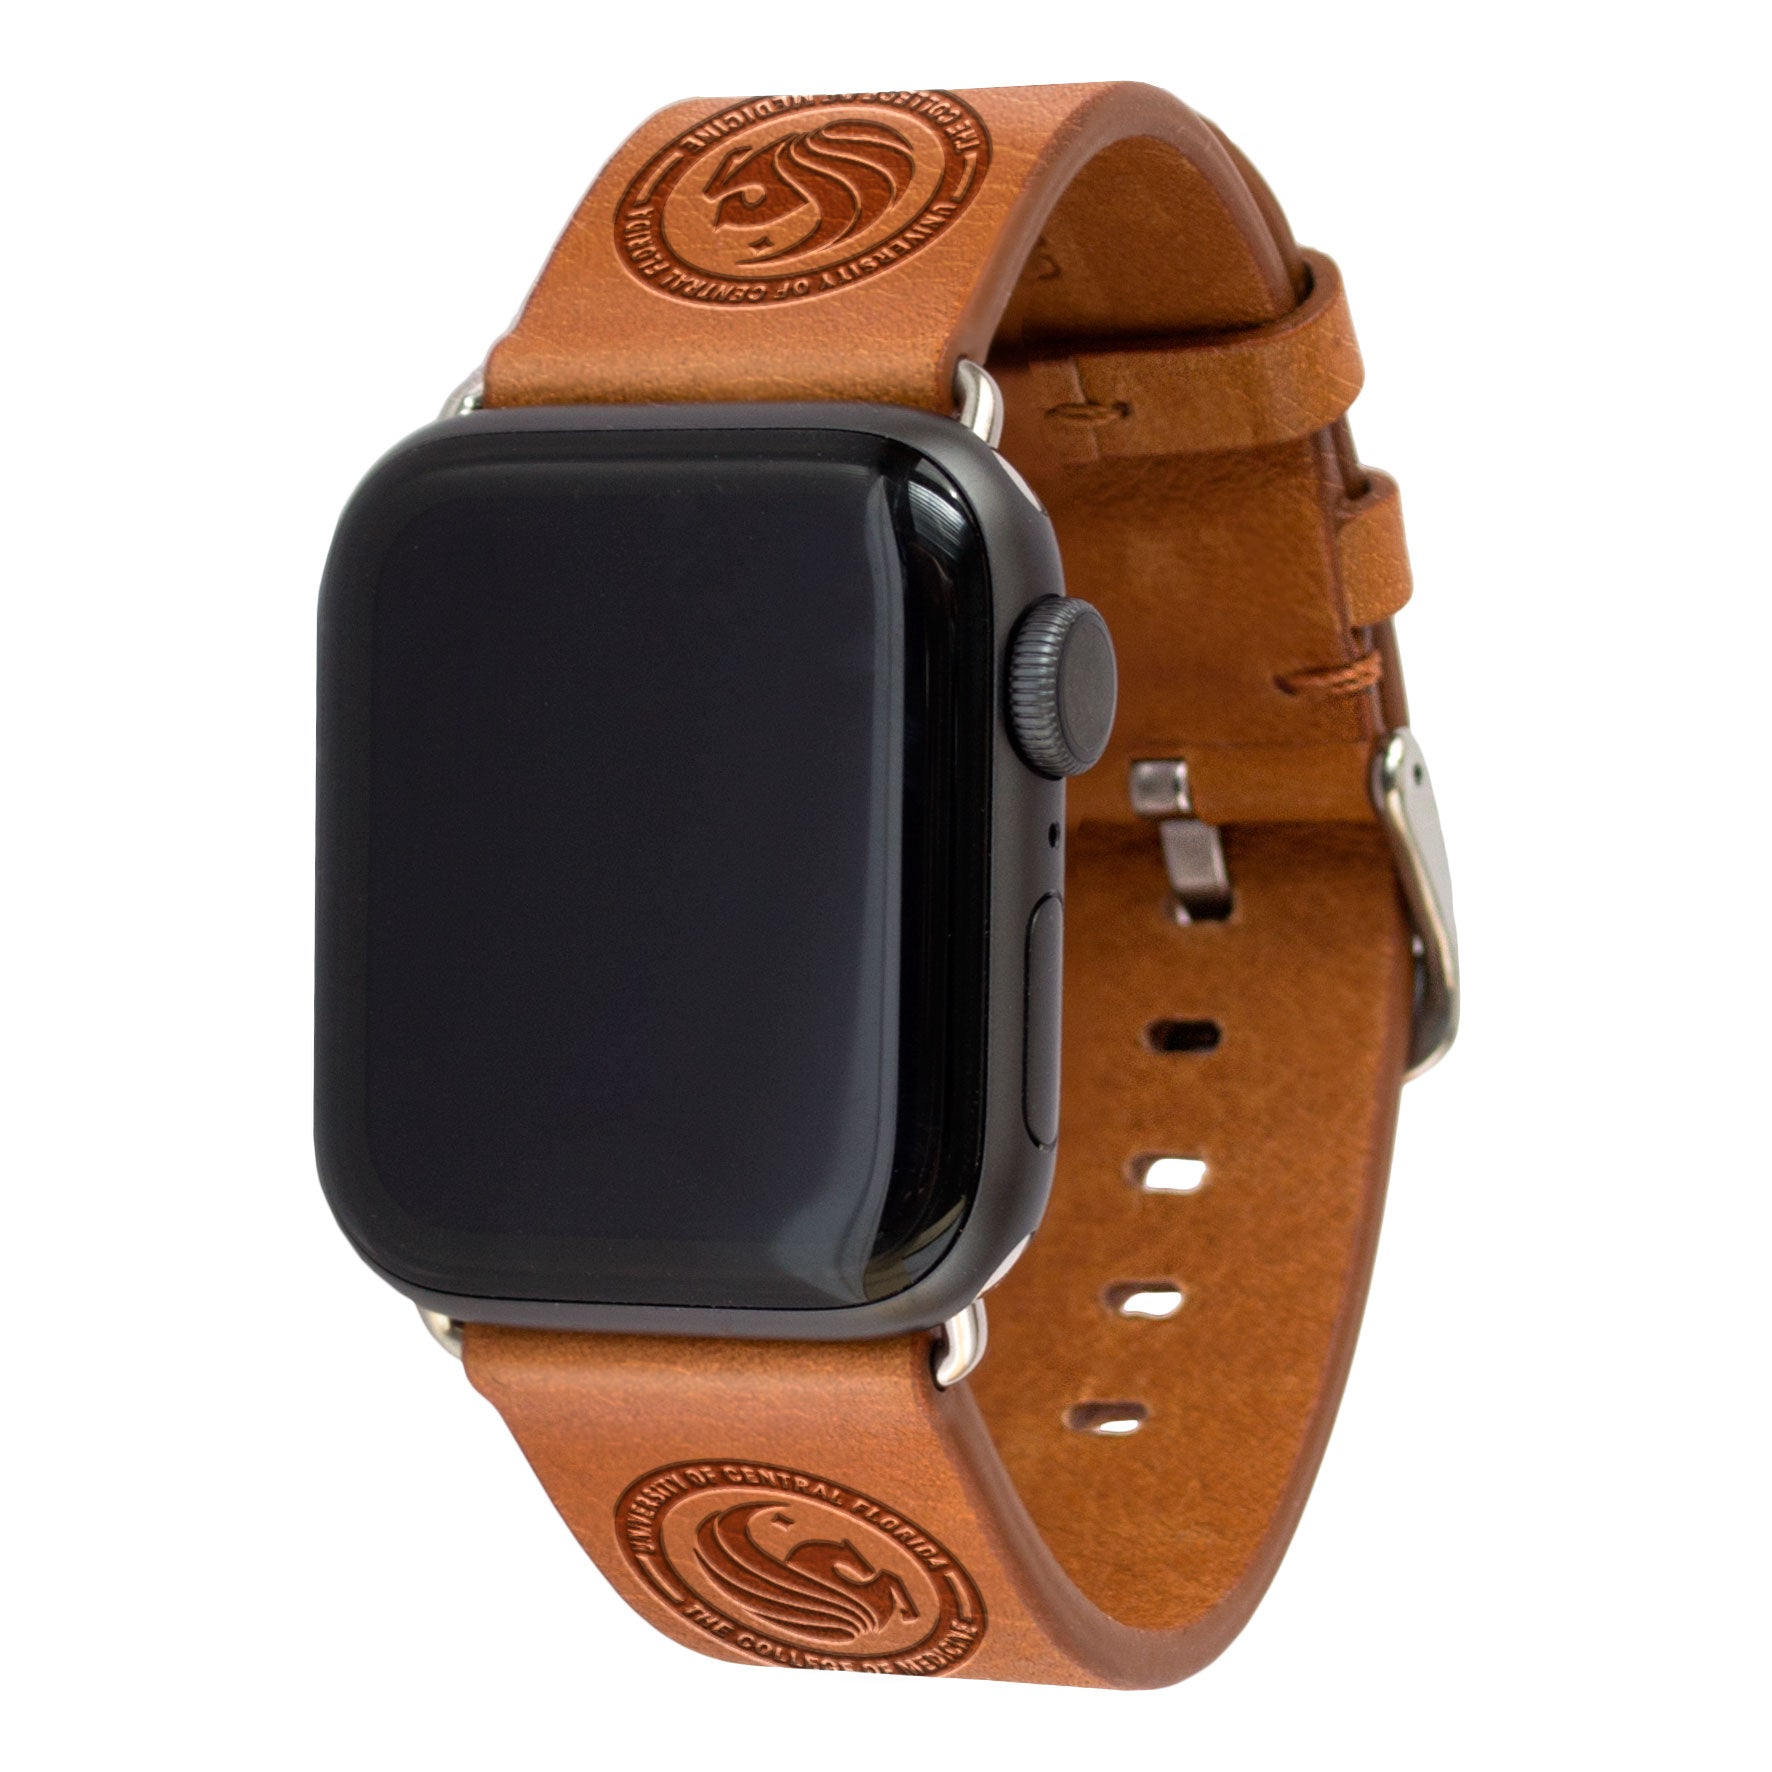 University of Central Florida The College of Medicine Leather Apple Watch Band